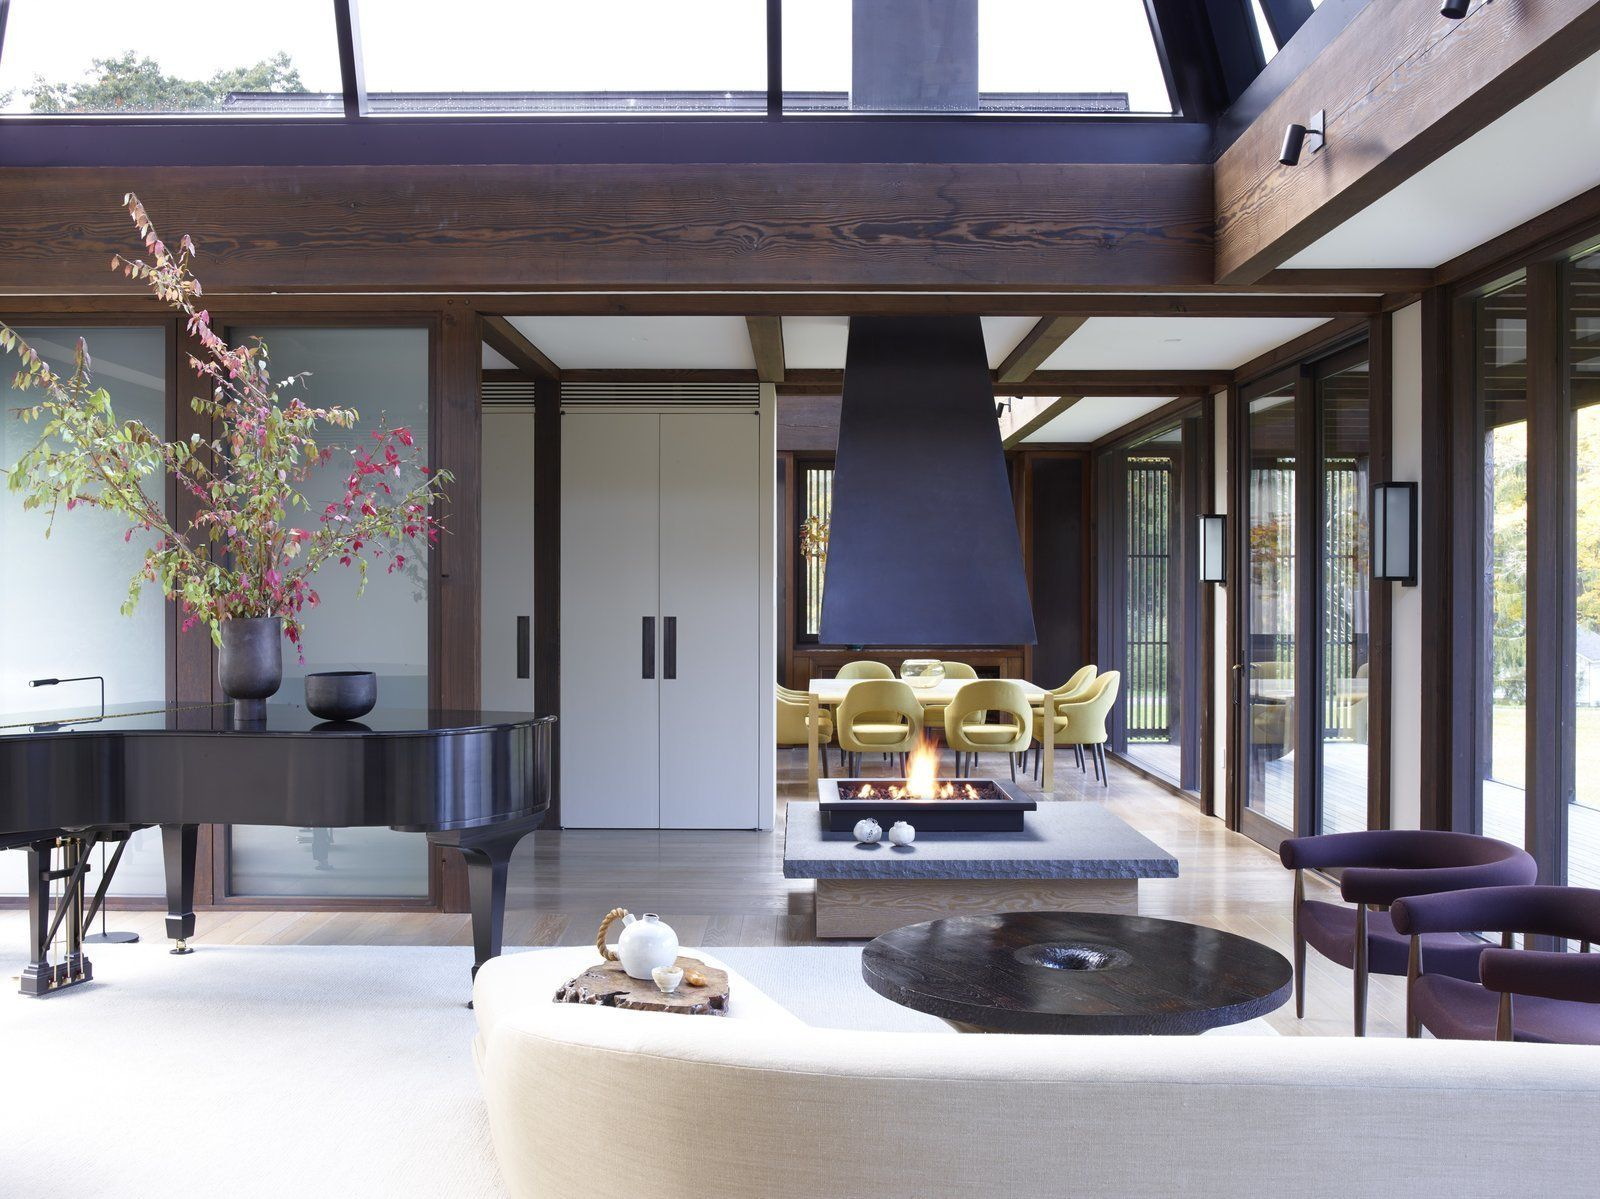 10 Zen Homes That Champion Japanese Design